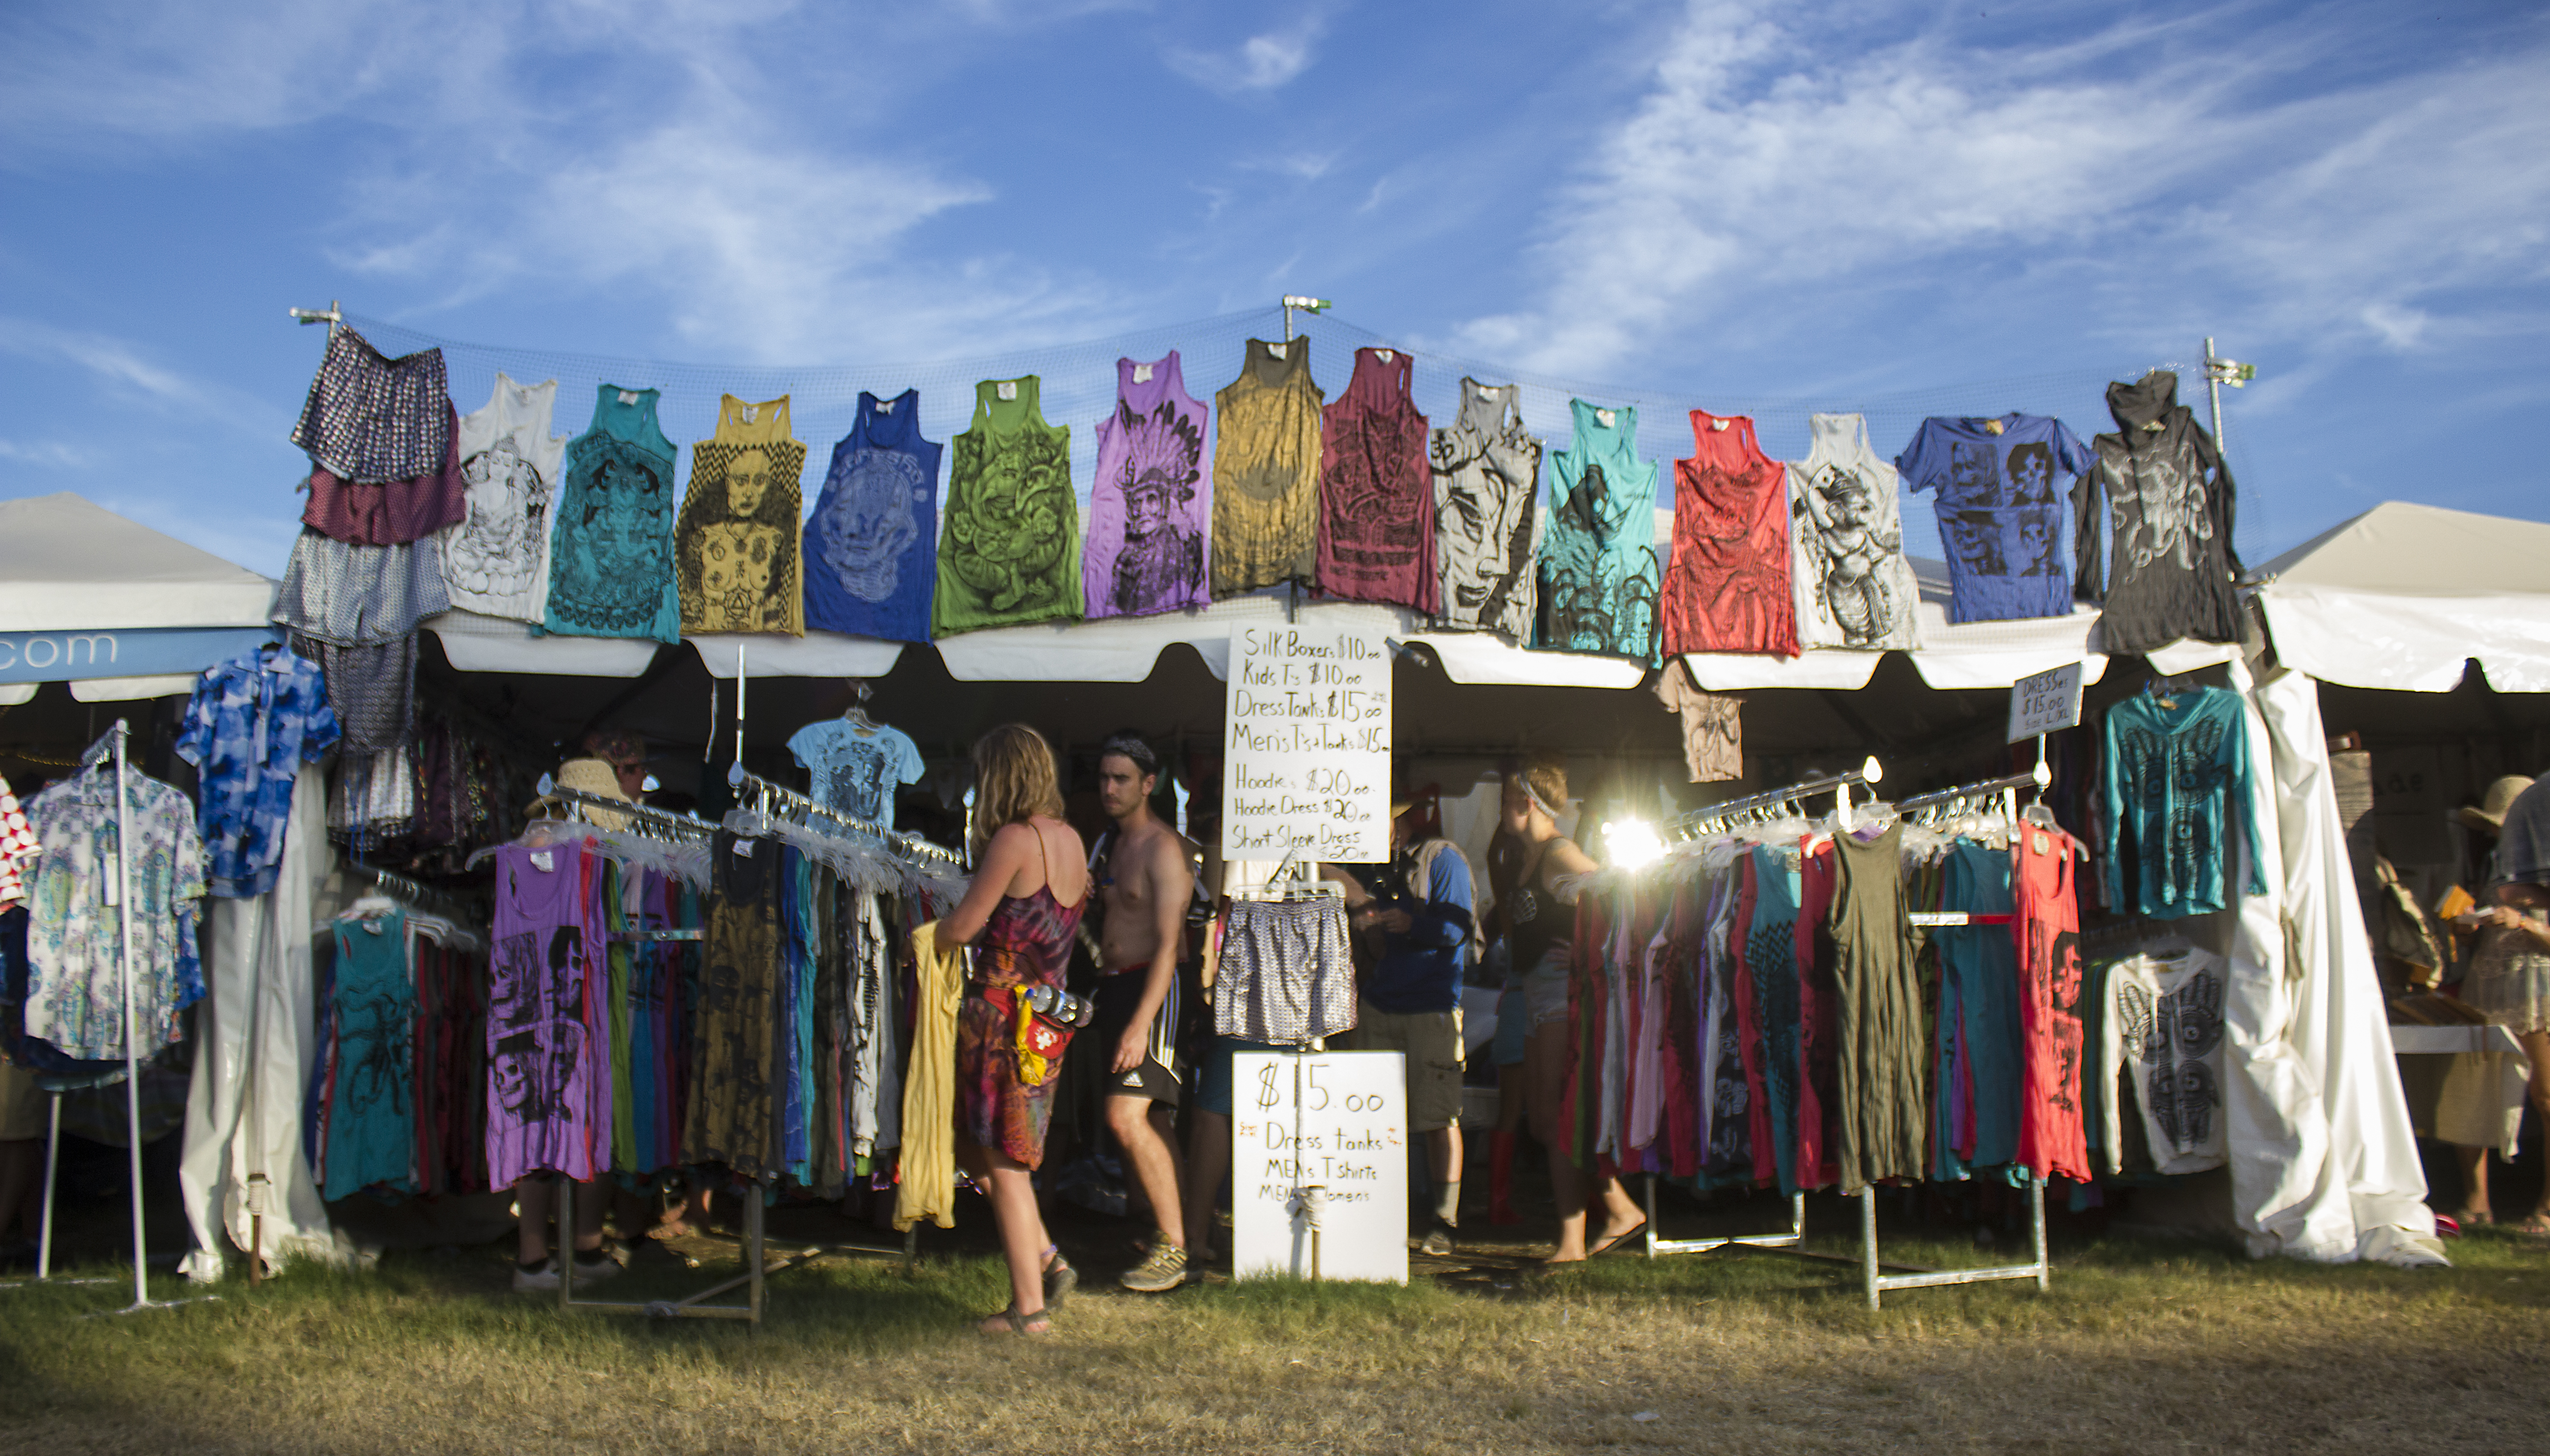 Merch and fashion at the Bonnaroo Music & Arts Festival in Manchester, Tennessee on 06/14/15. Photo by: Matthew McGuire.